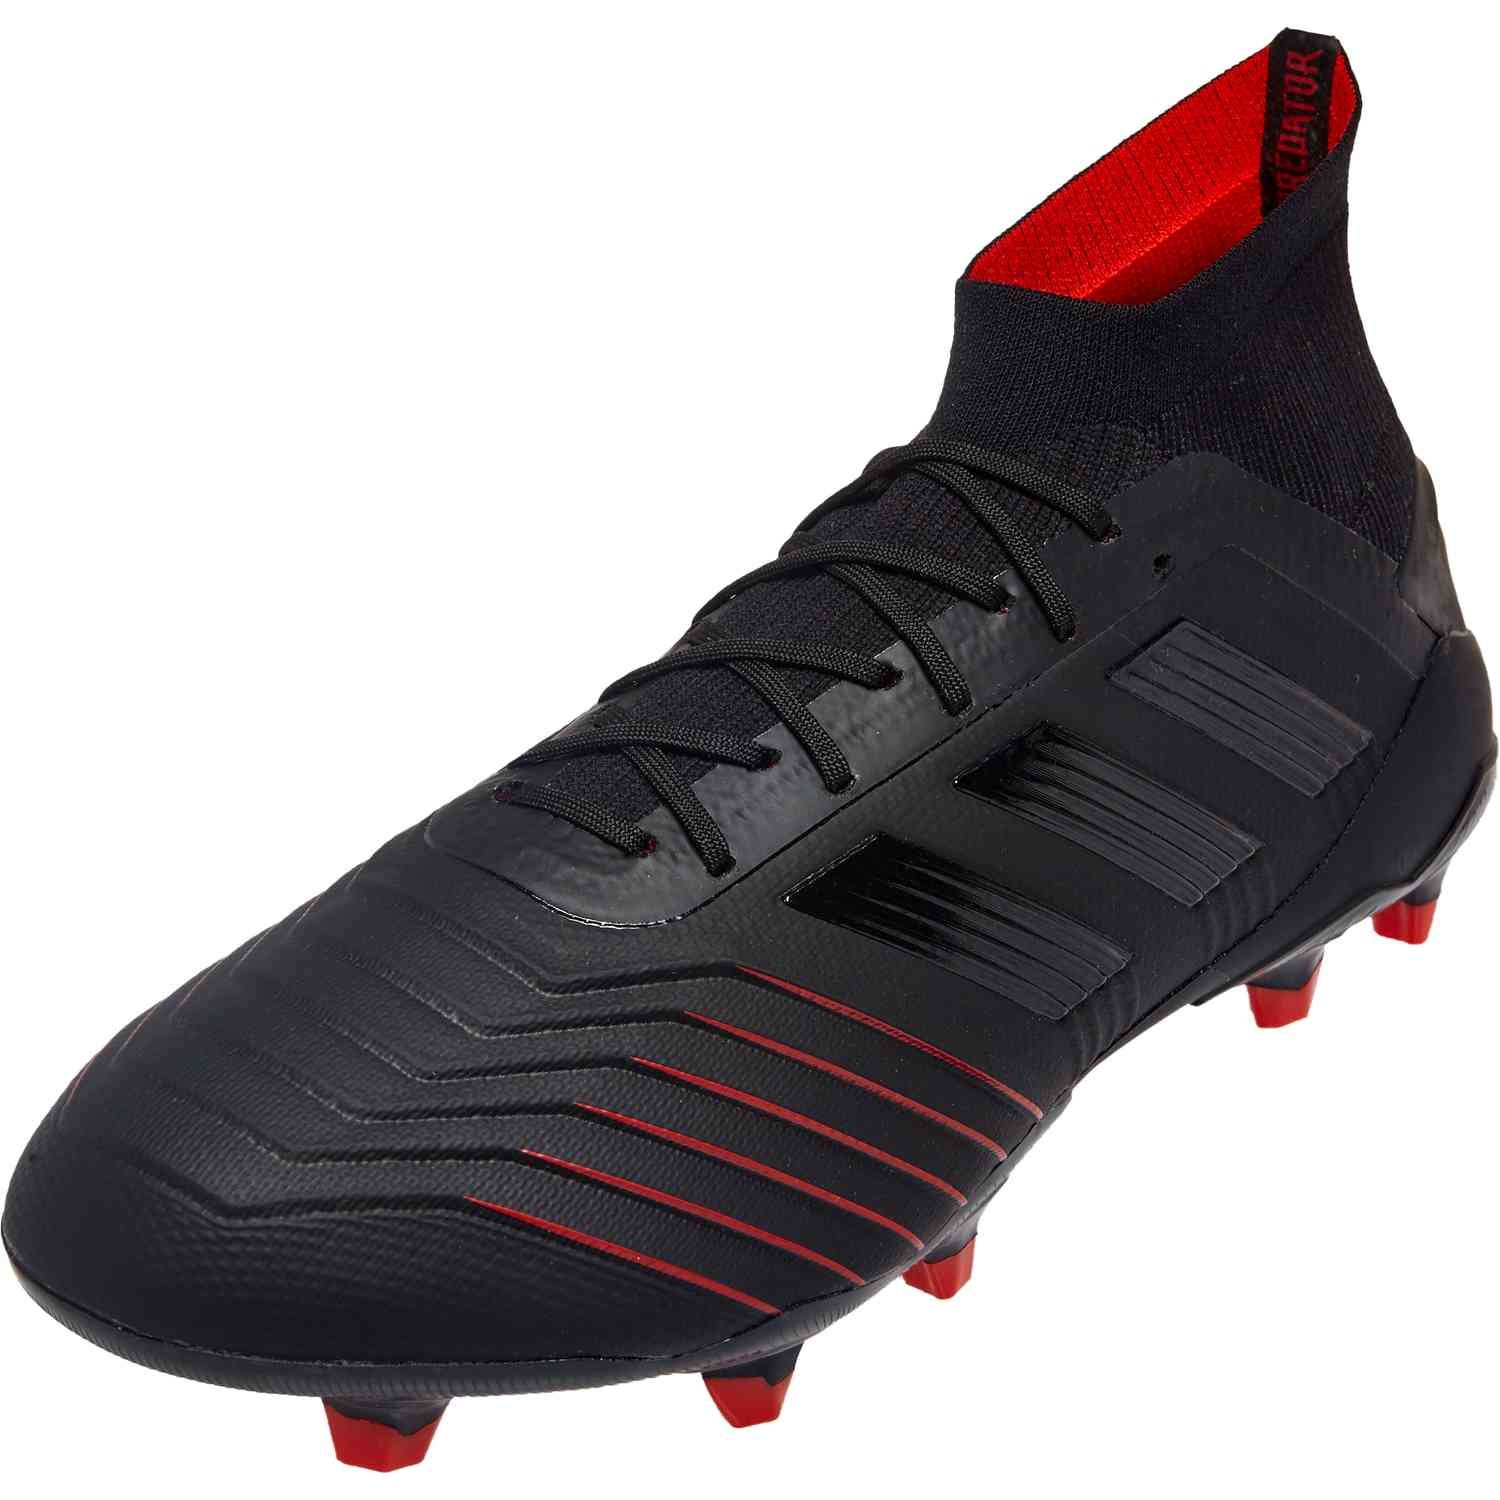 fb9f538a60 The all new adidas Predator 19.1 from the archetic pack is hot at SoccerPro  right now!